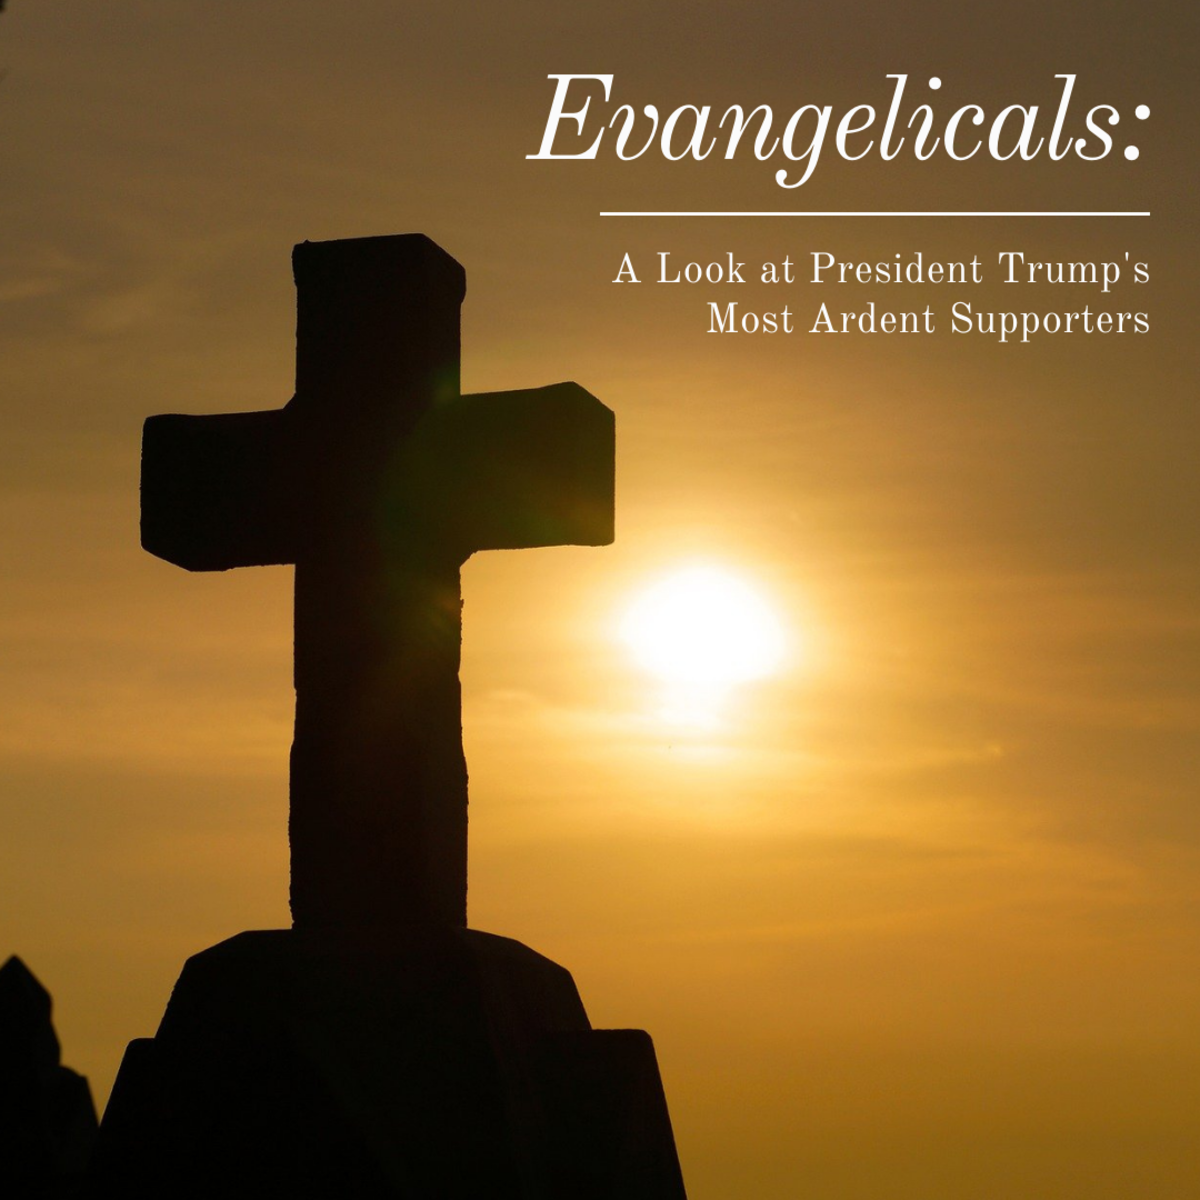 This article will take a look at evangelical Christians, why they love President Trump so much, and whether or not they will continue to support him.